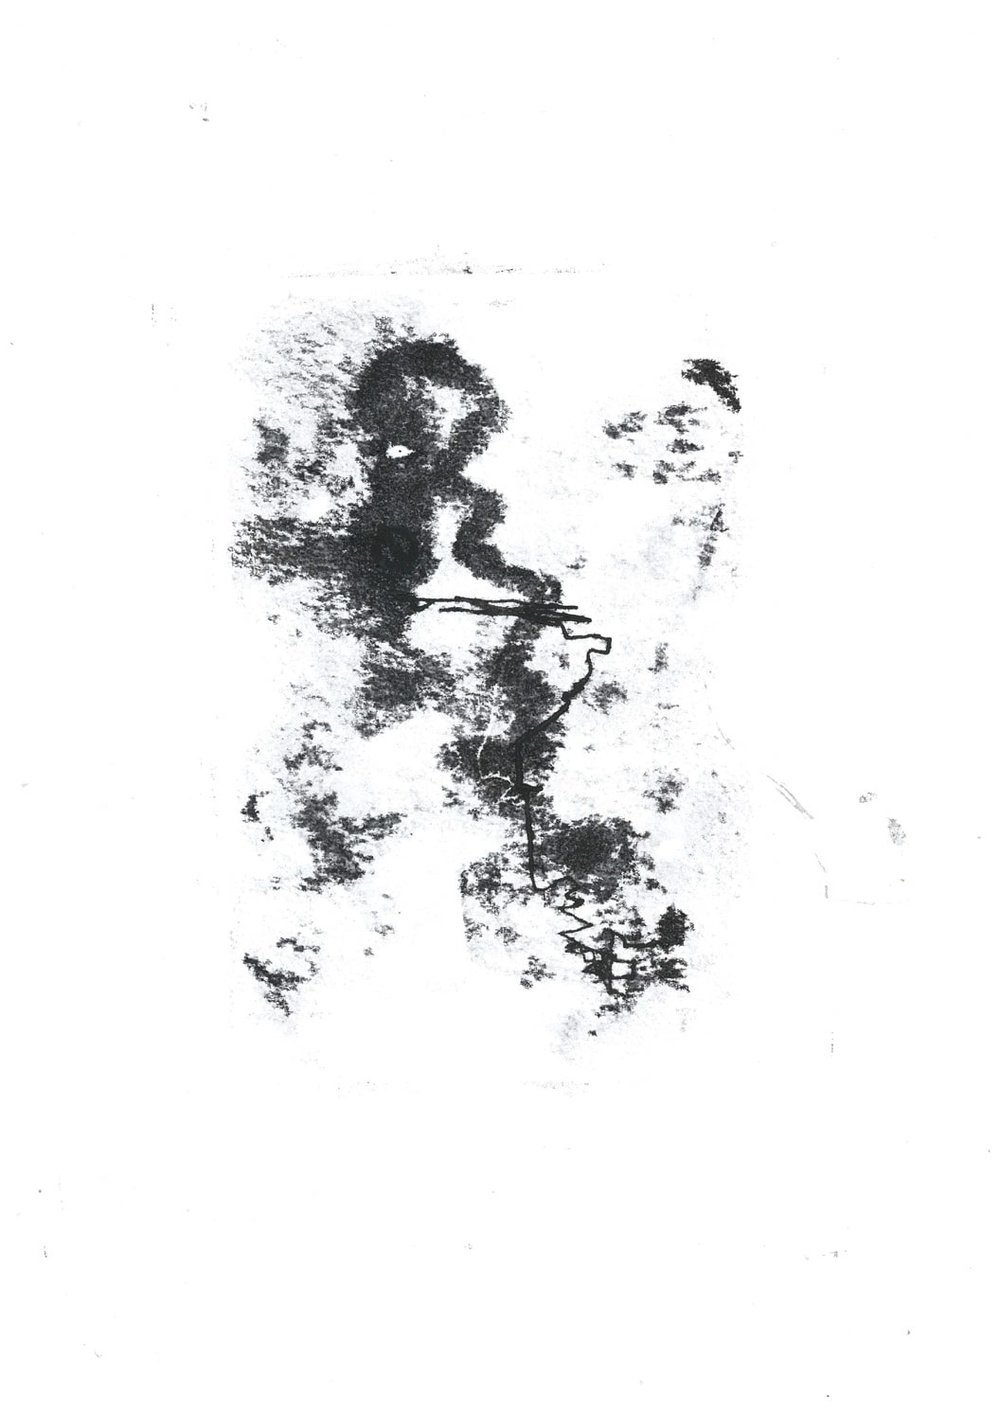 ink-print-memory-of-a-space-3-min.jpg